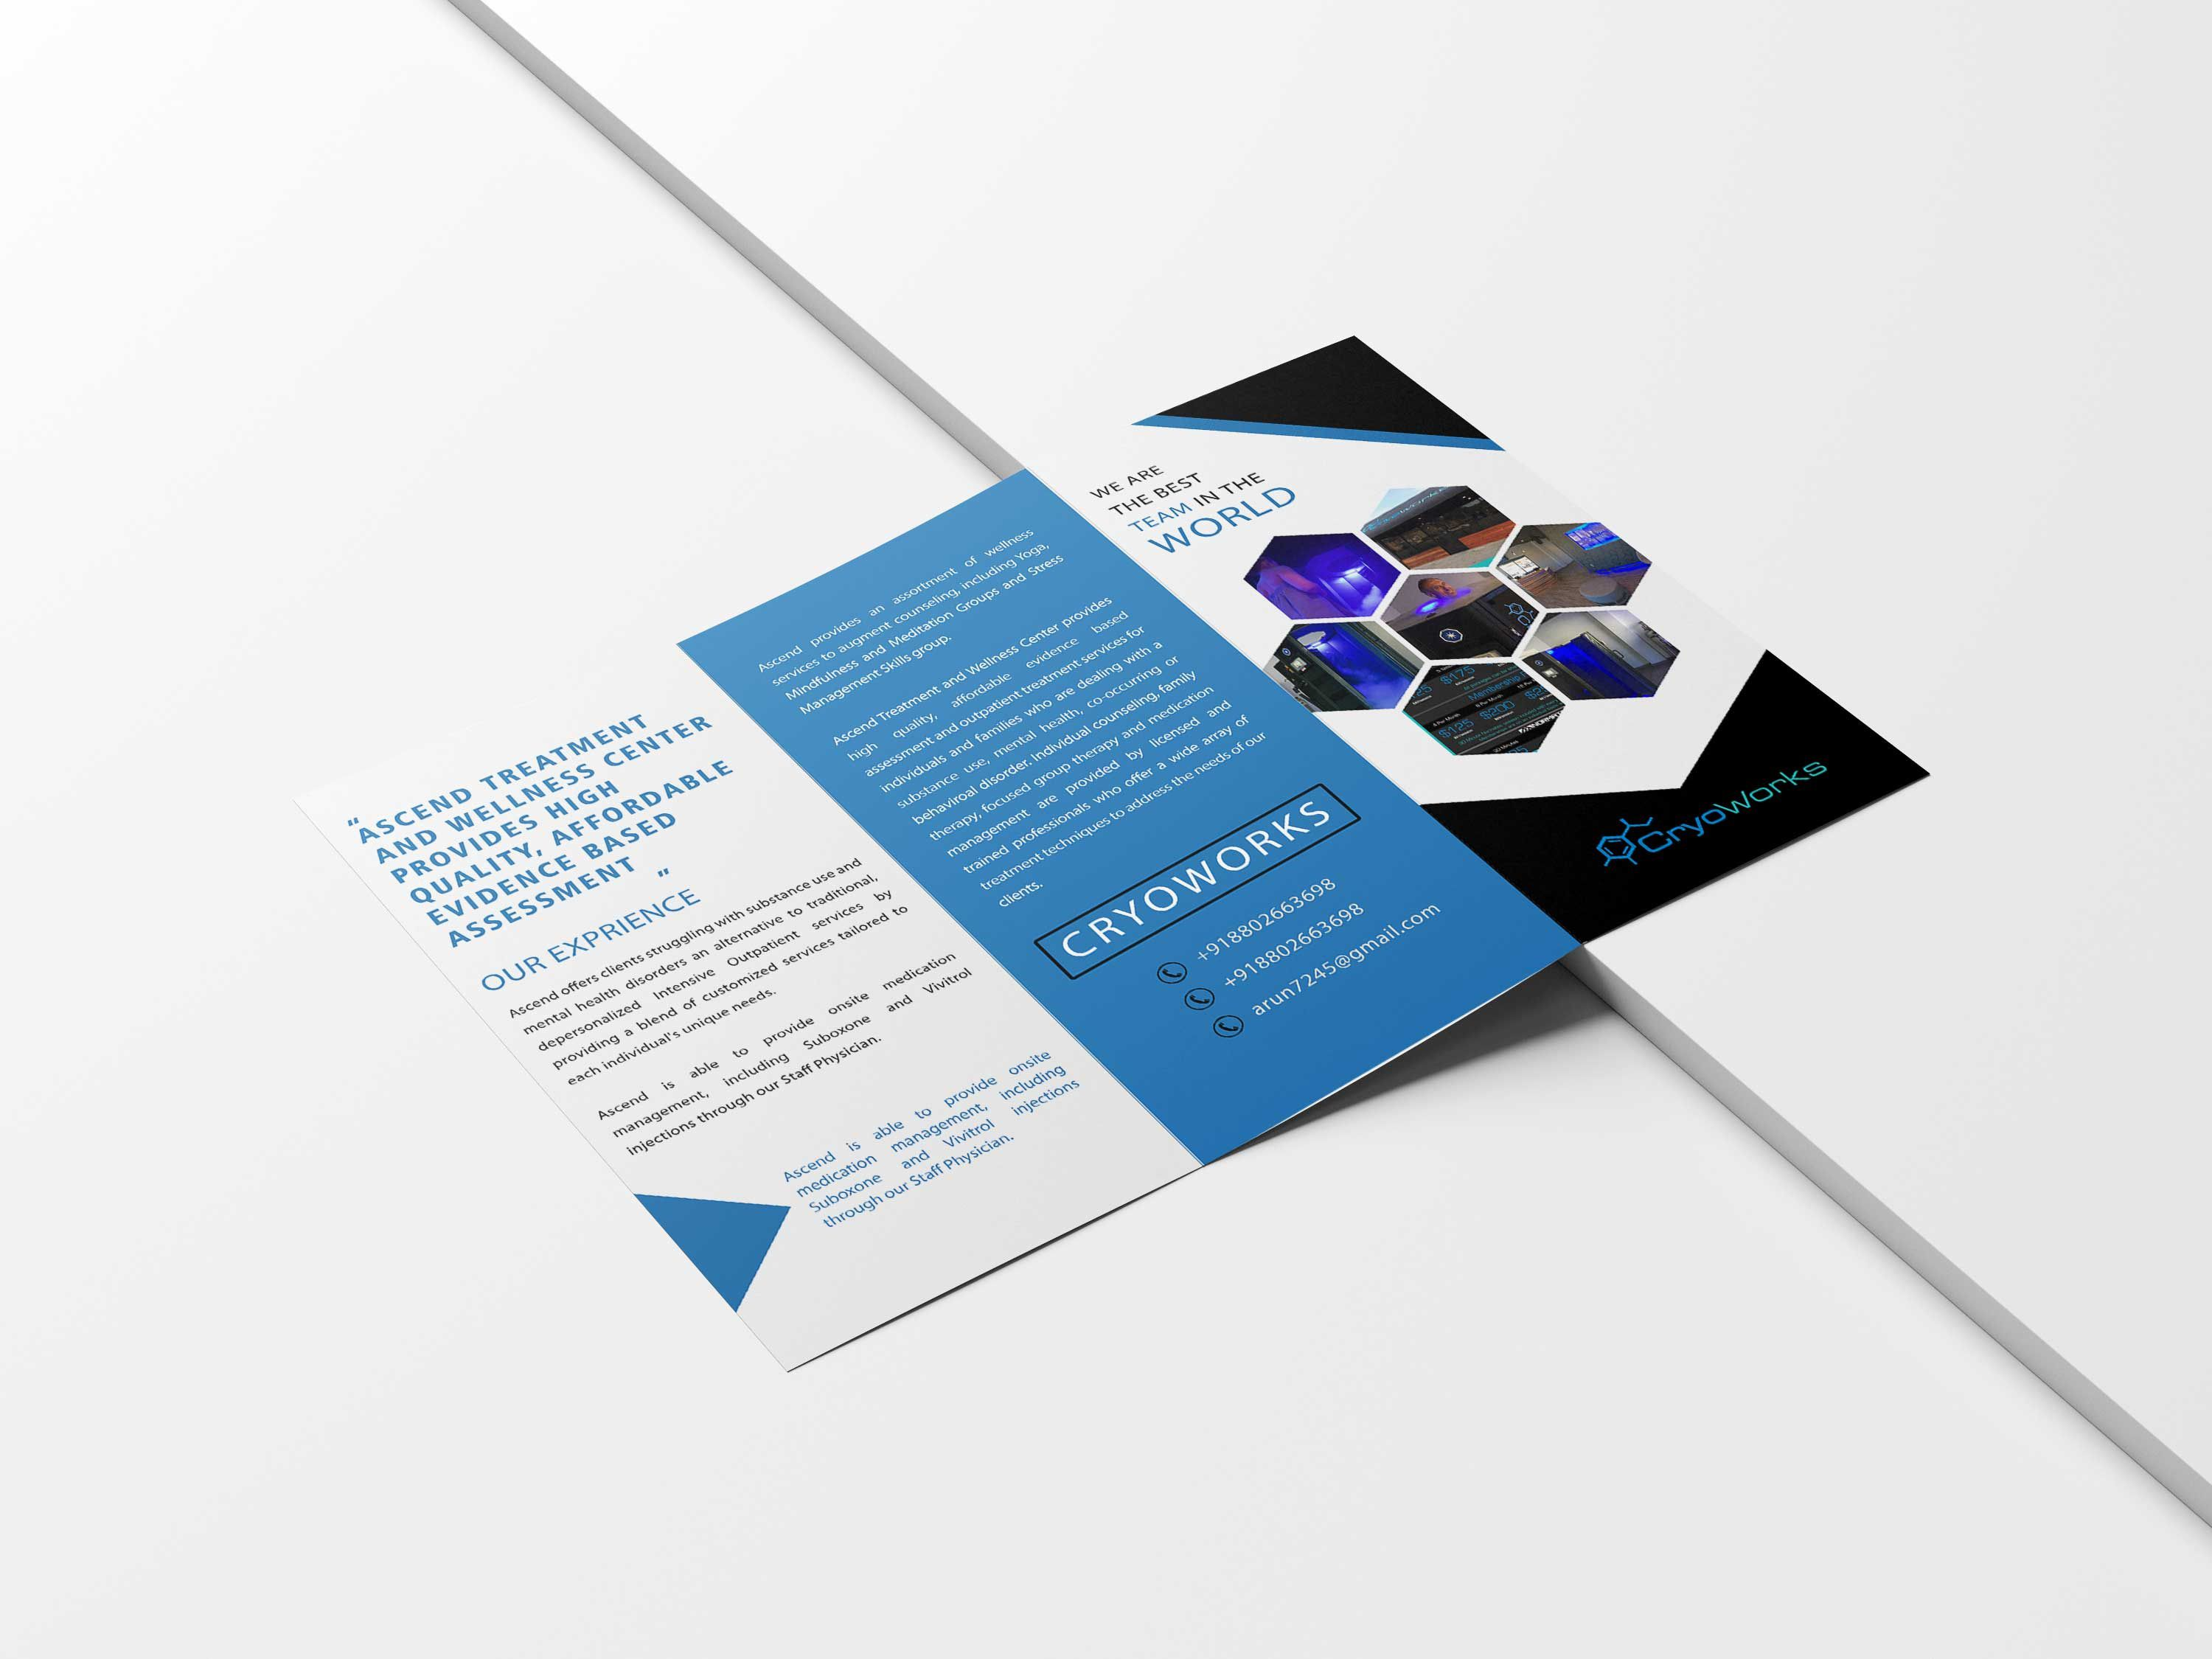 005 Magnificent Brochure Design Template Psd Free Download Concept  HotelFull